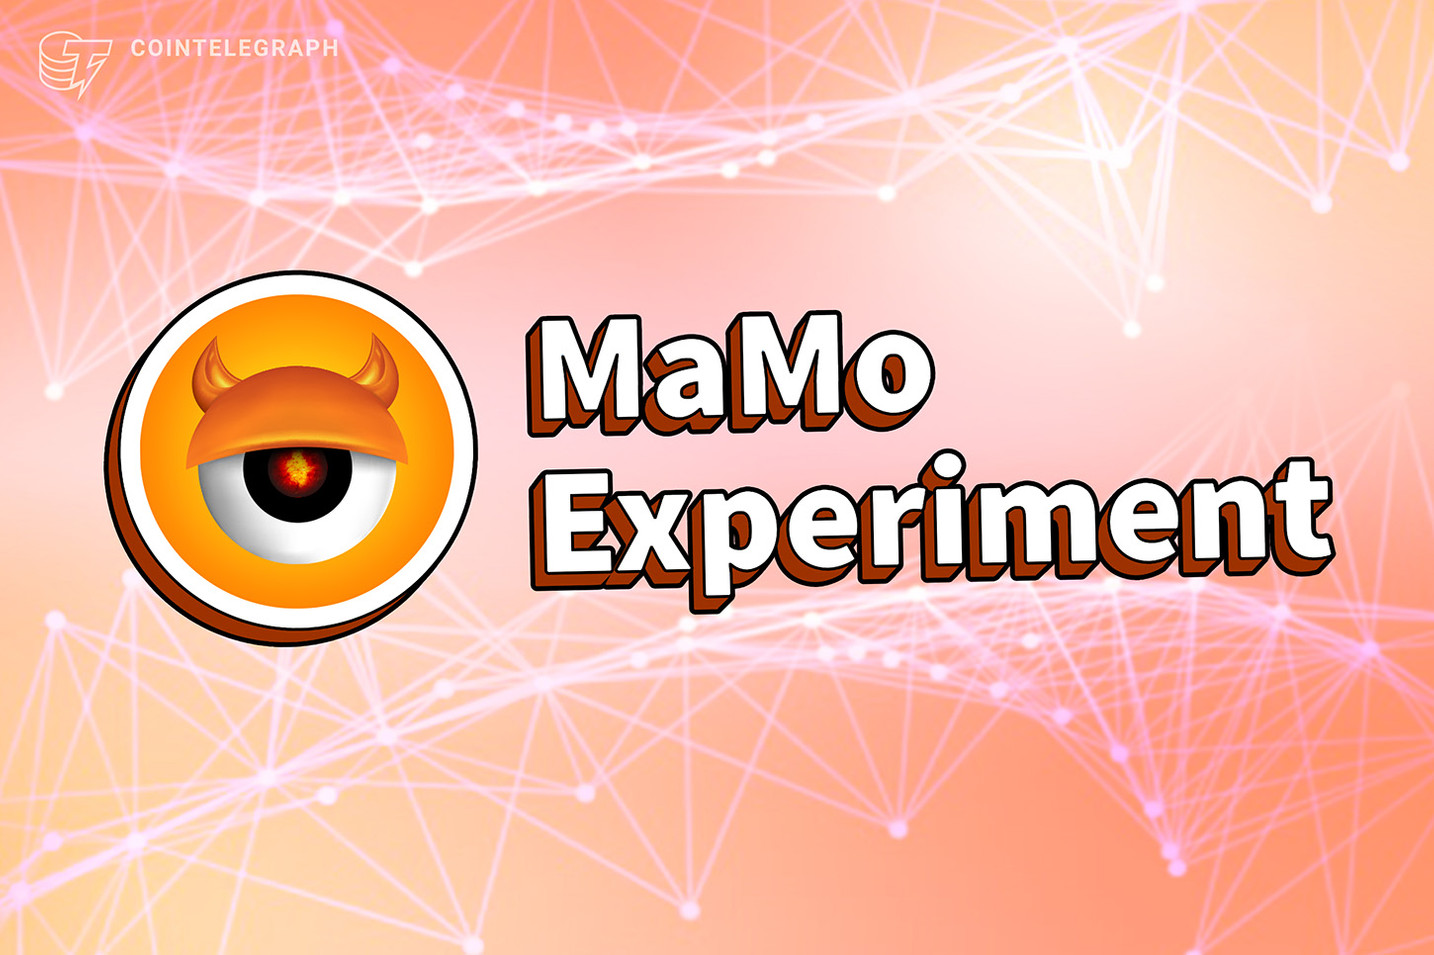 MaMo Experiment and Stark Capital reached a collaboration consensus